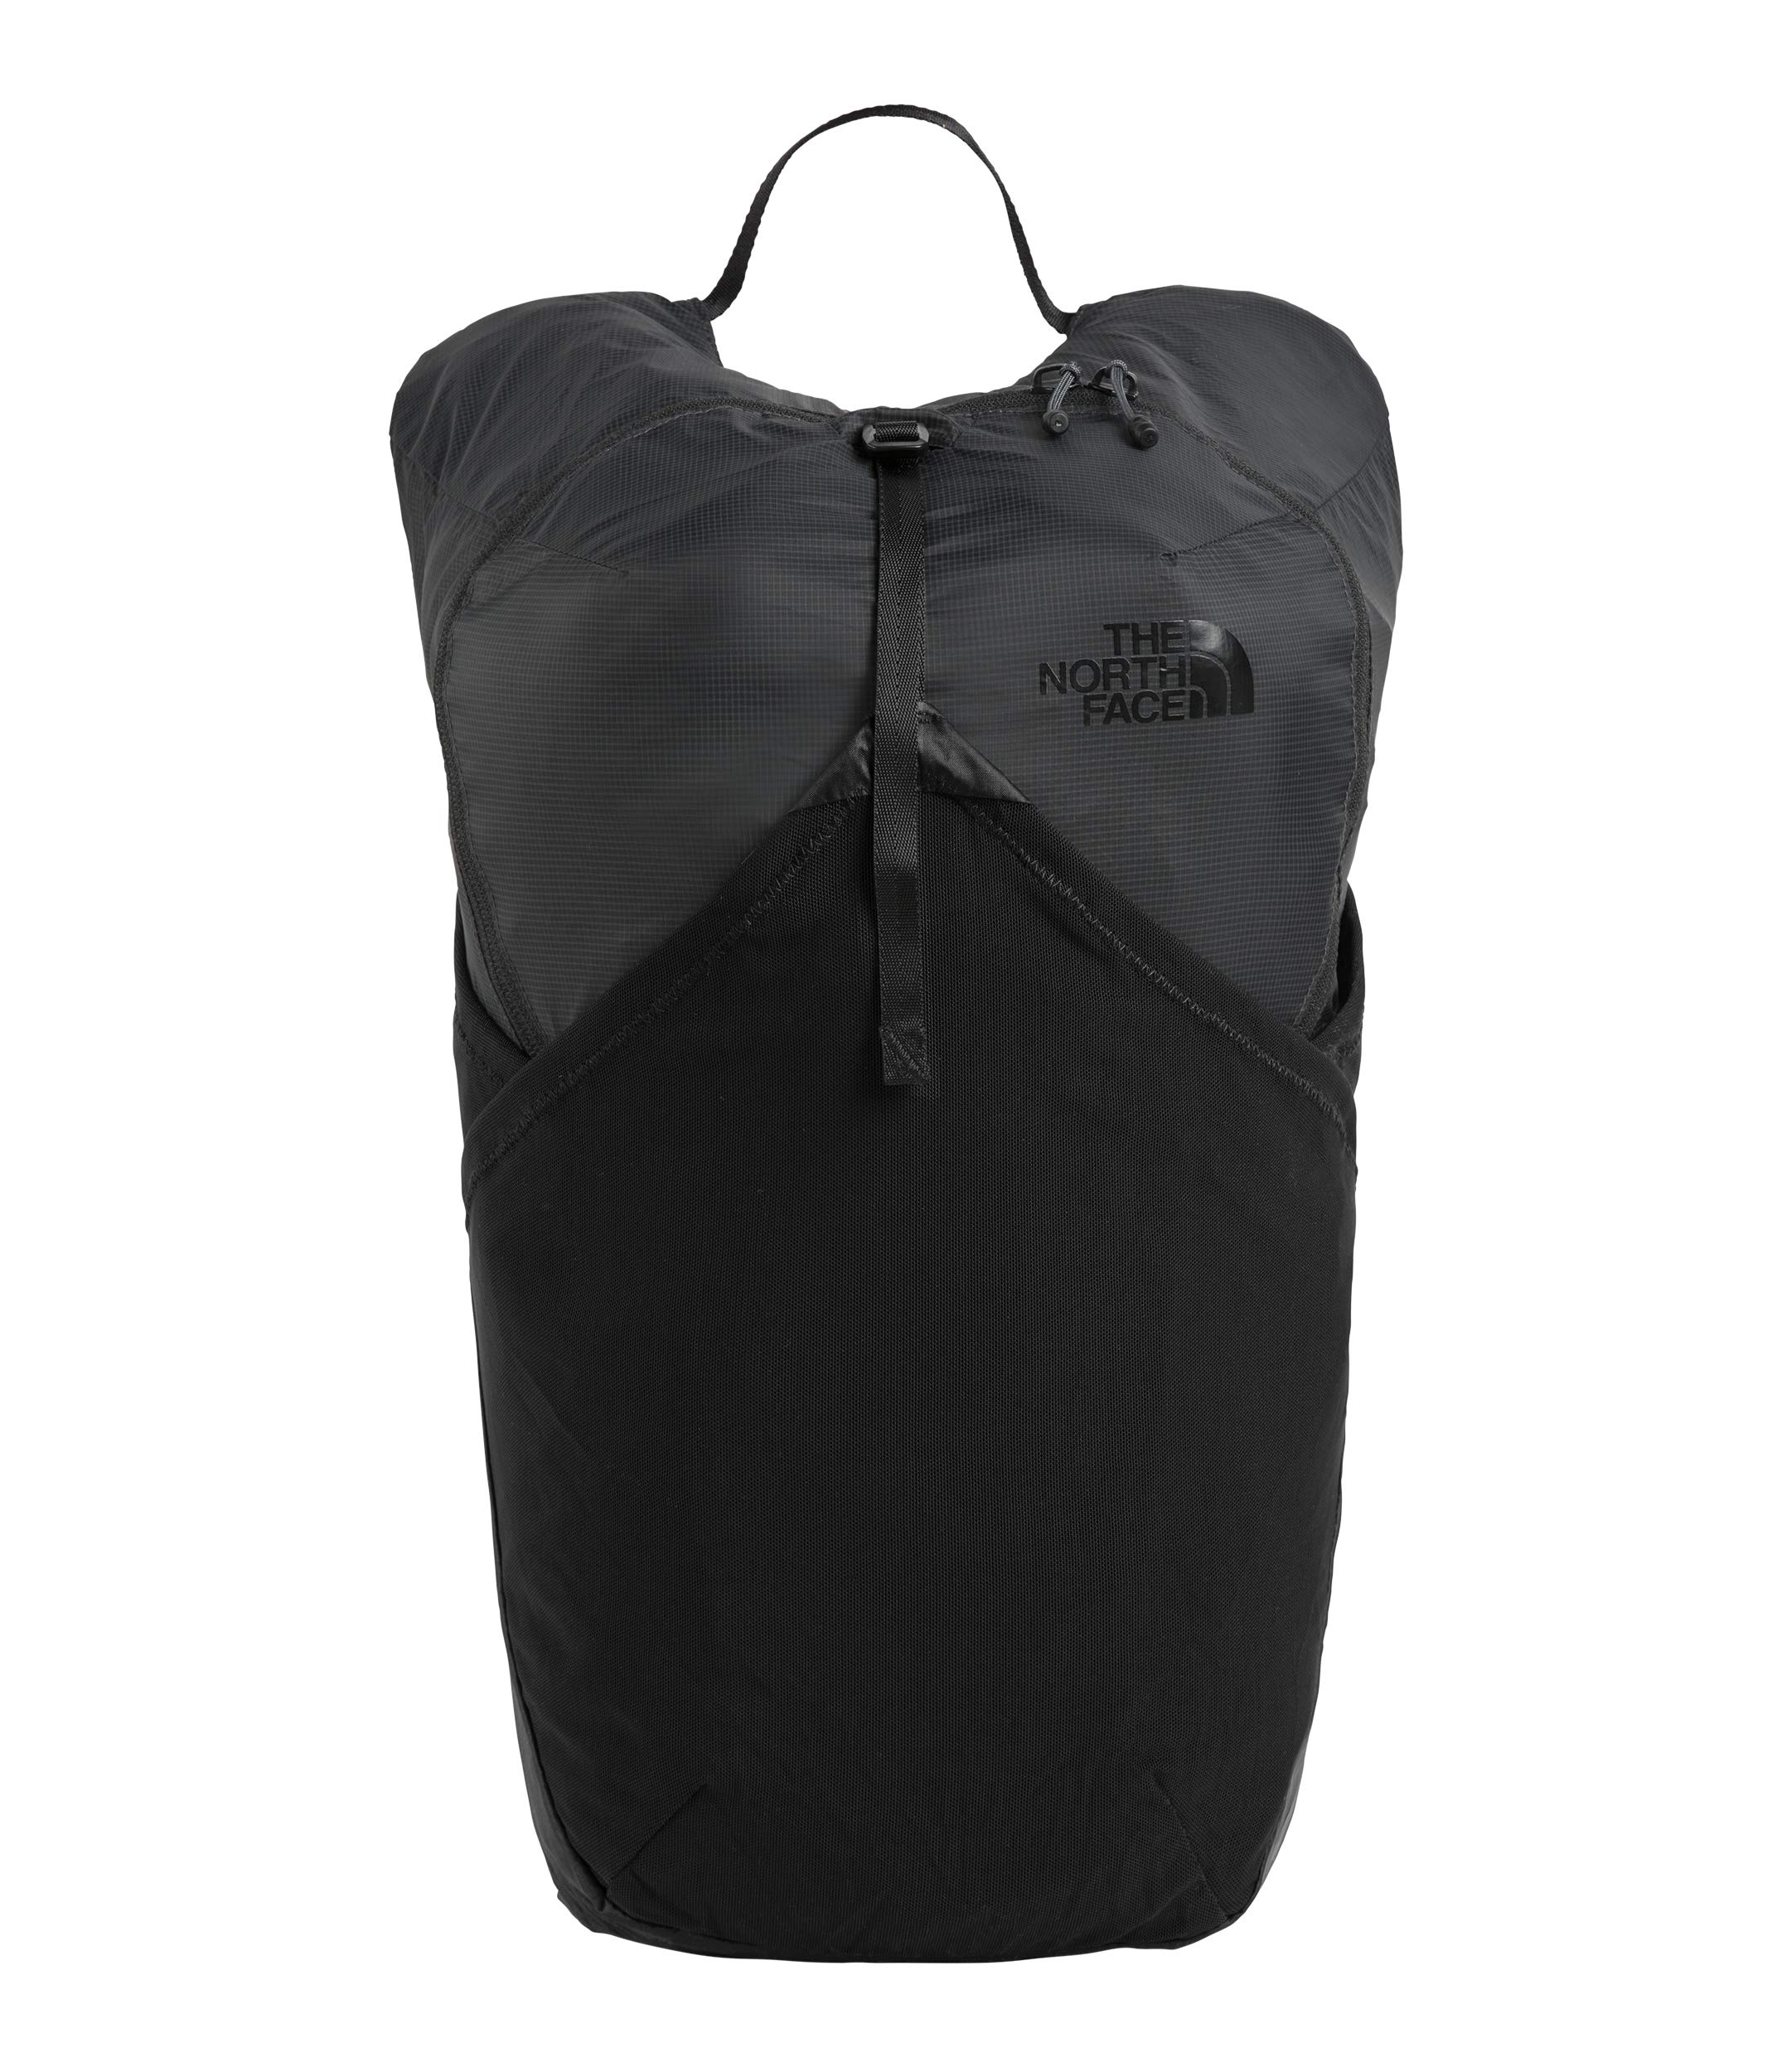 The North Face Flyweight Pack, Asphalt Grey/TNF Black, OS by The North Face